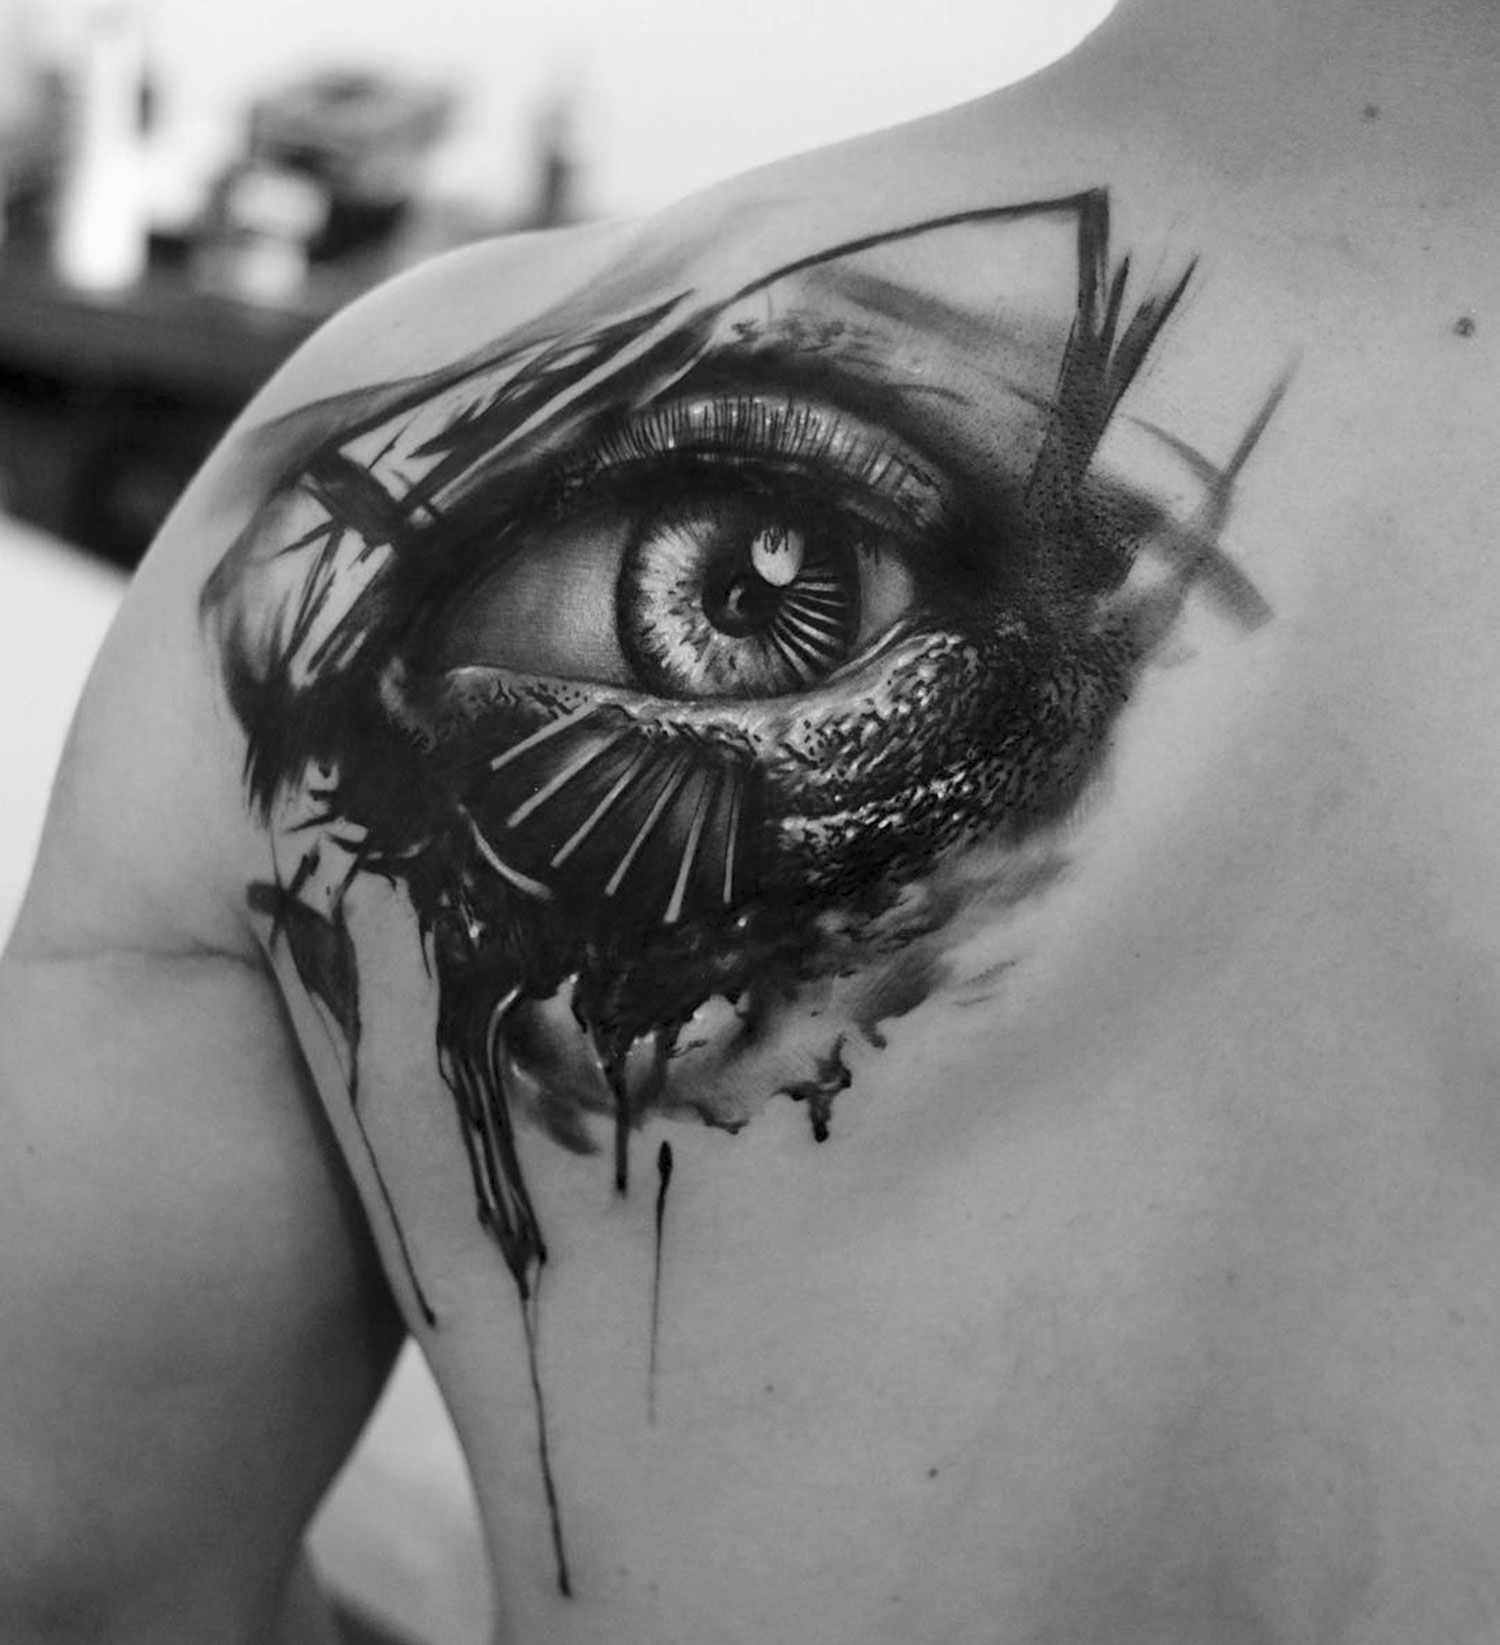 eye tattoo on back, abstract style